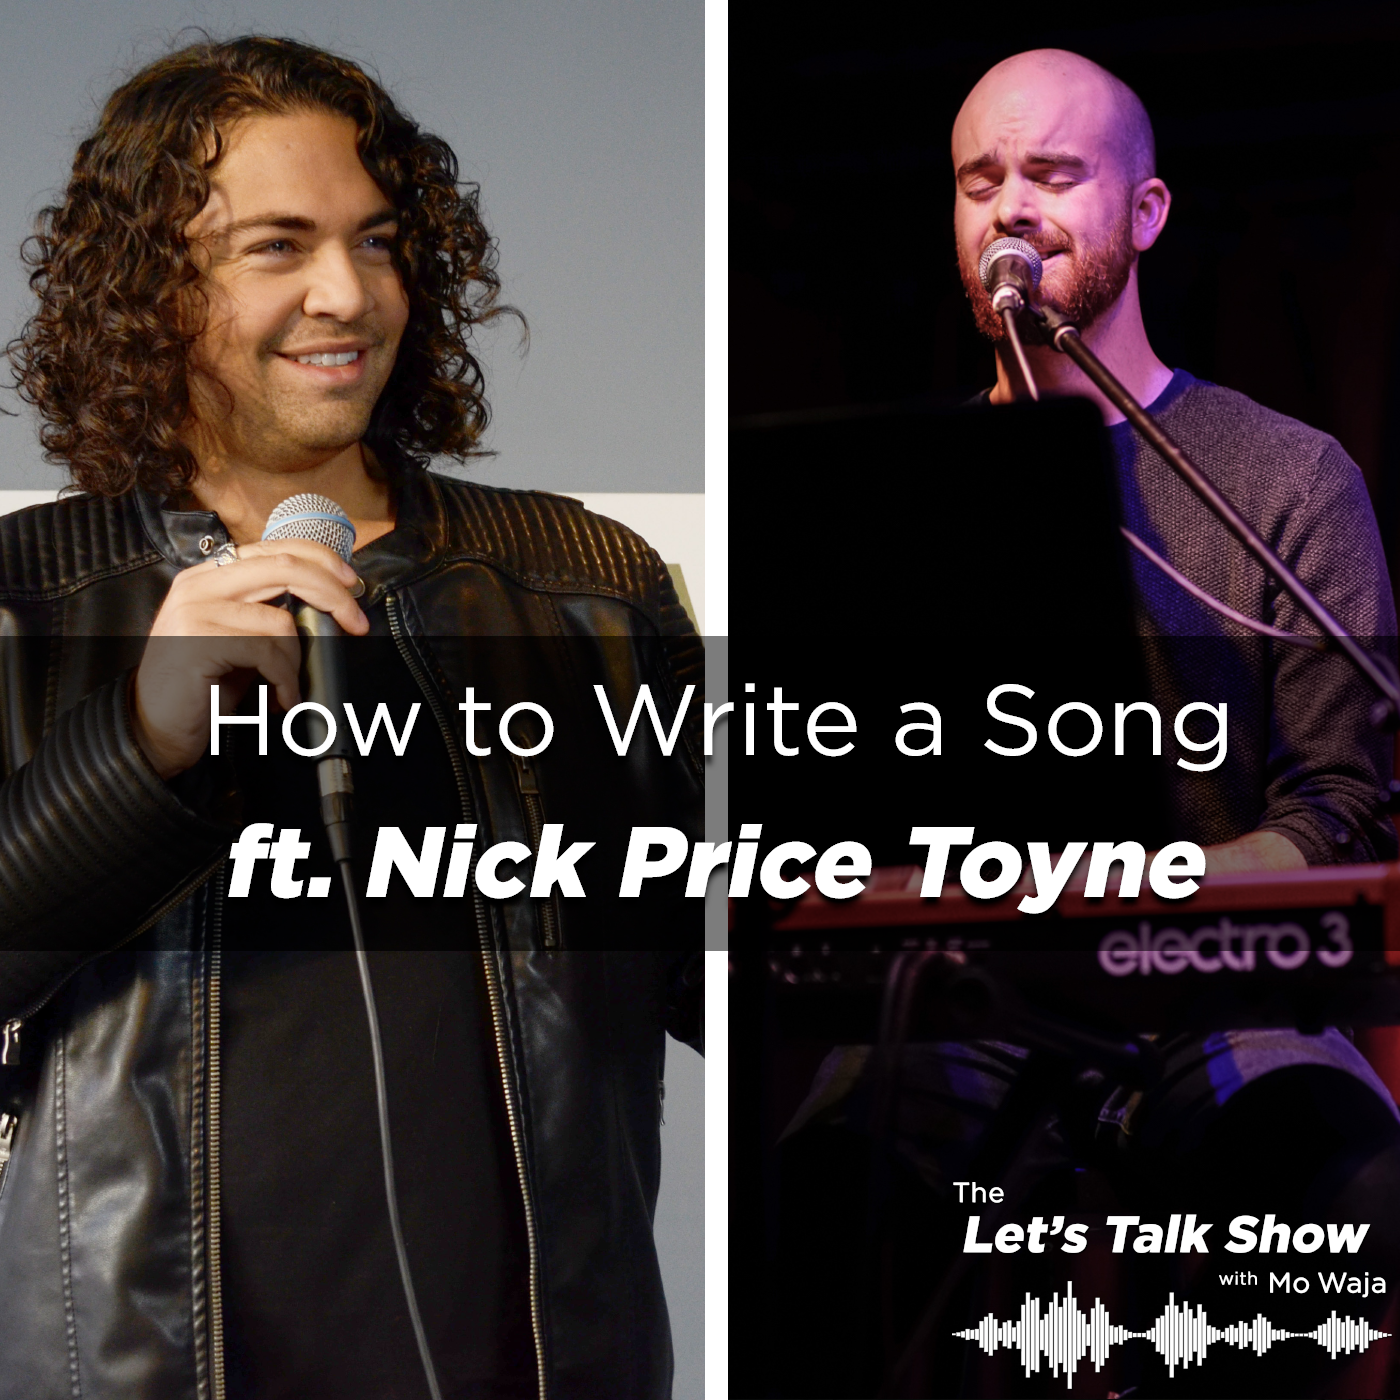 Artwork for How to Write a Song ft. Nick Price Toyne, Classically Trained Vocalist